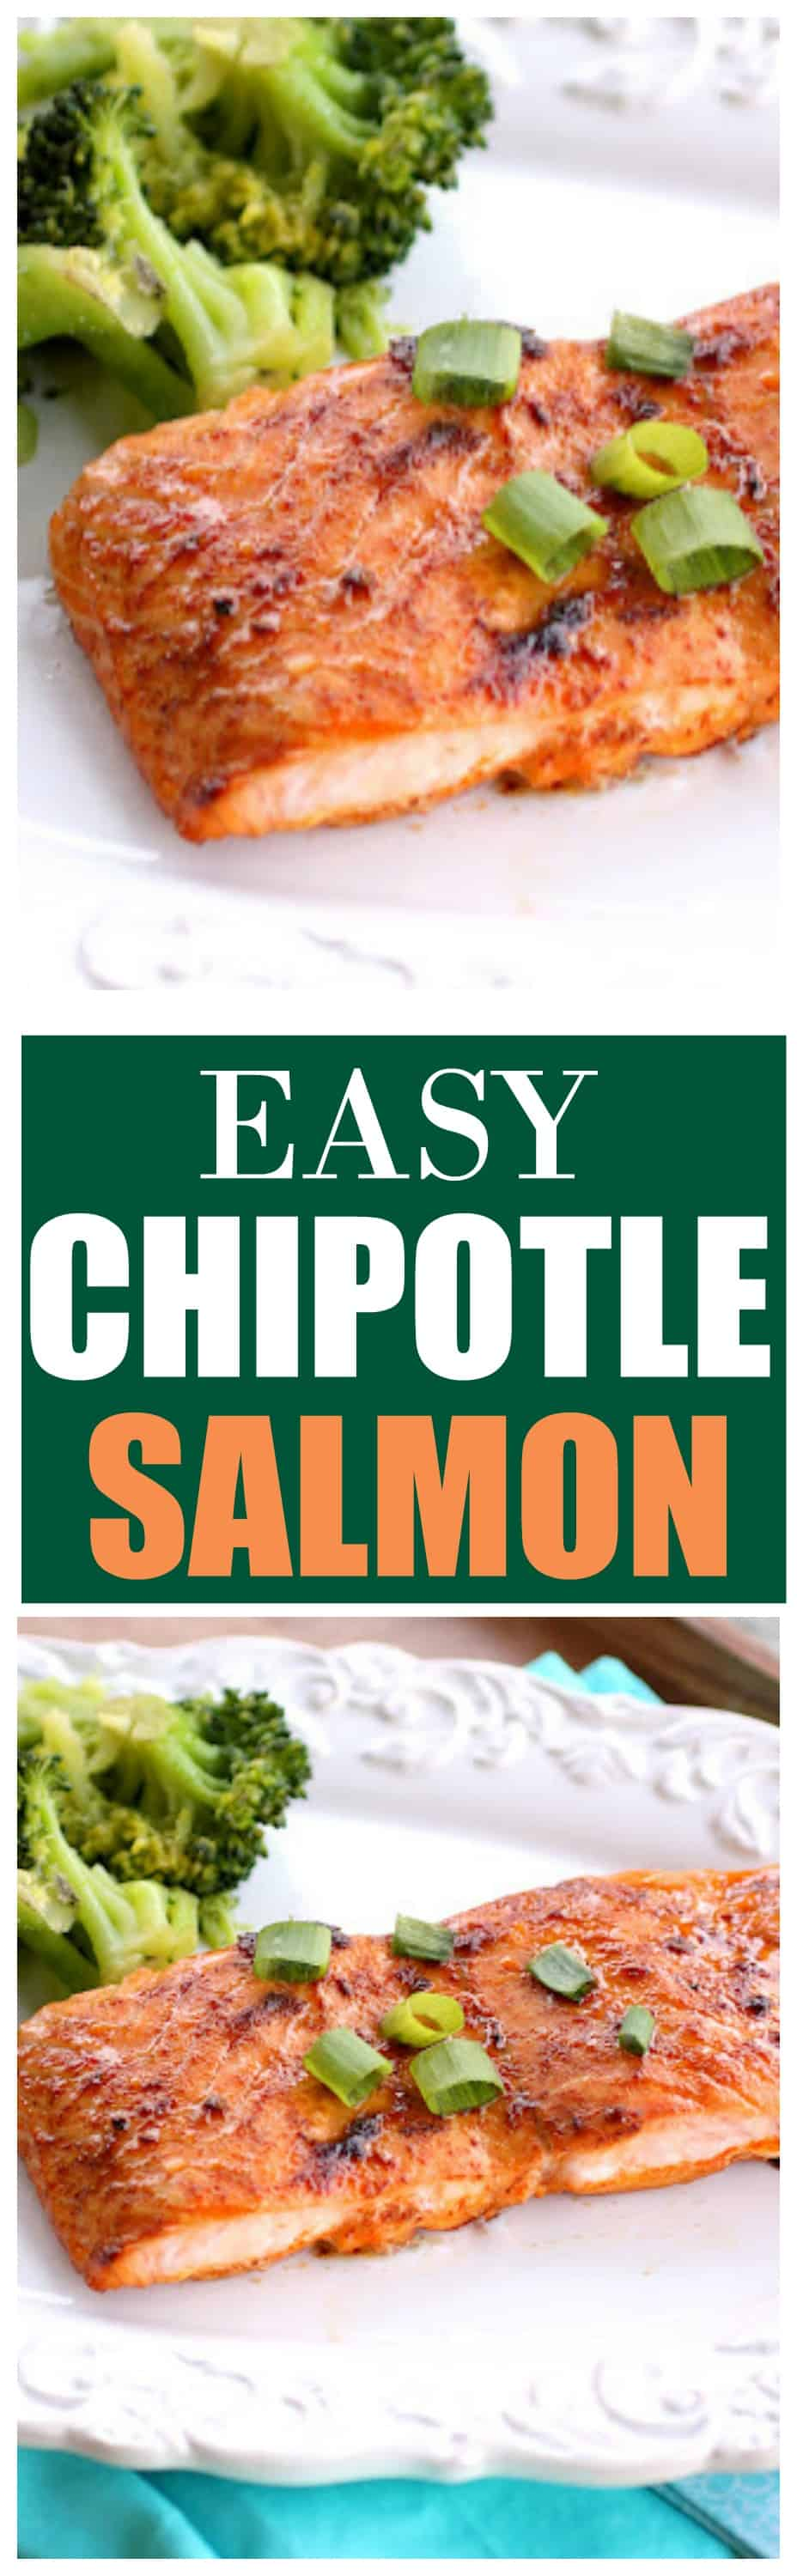 This Chipotle Salmon is spicy and sweet and only has a few ingredients in this healthy dinner recipe! #sweet #spicy #chipotle #salmon #seafood #dinner #recipe